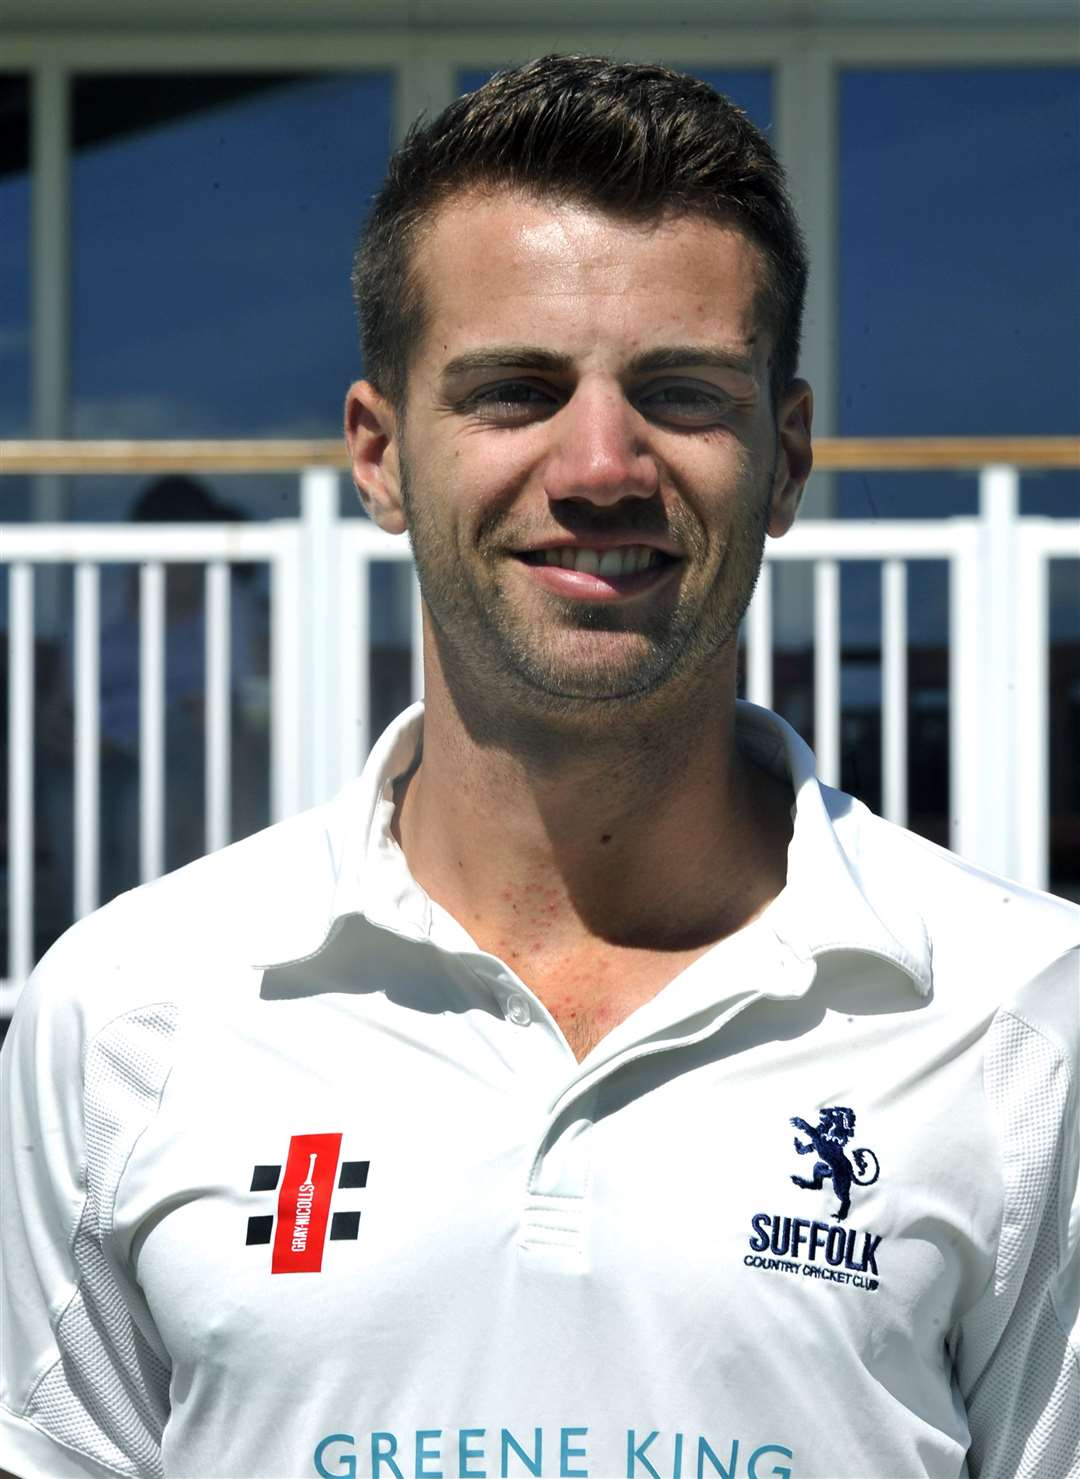 Matt Wareing pictured while playing for Suffolk CCC in 2017Picture: Andy Abbott (34839075)